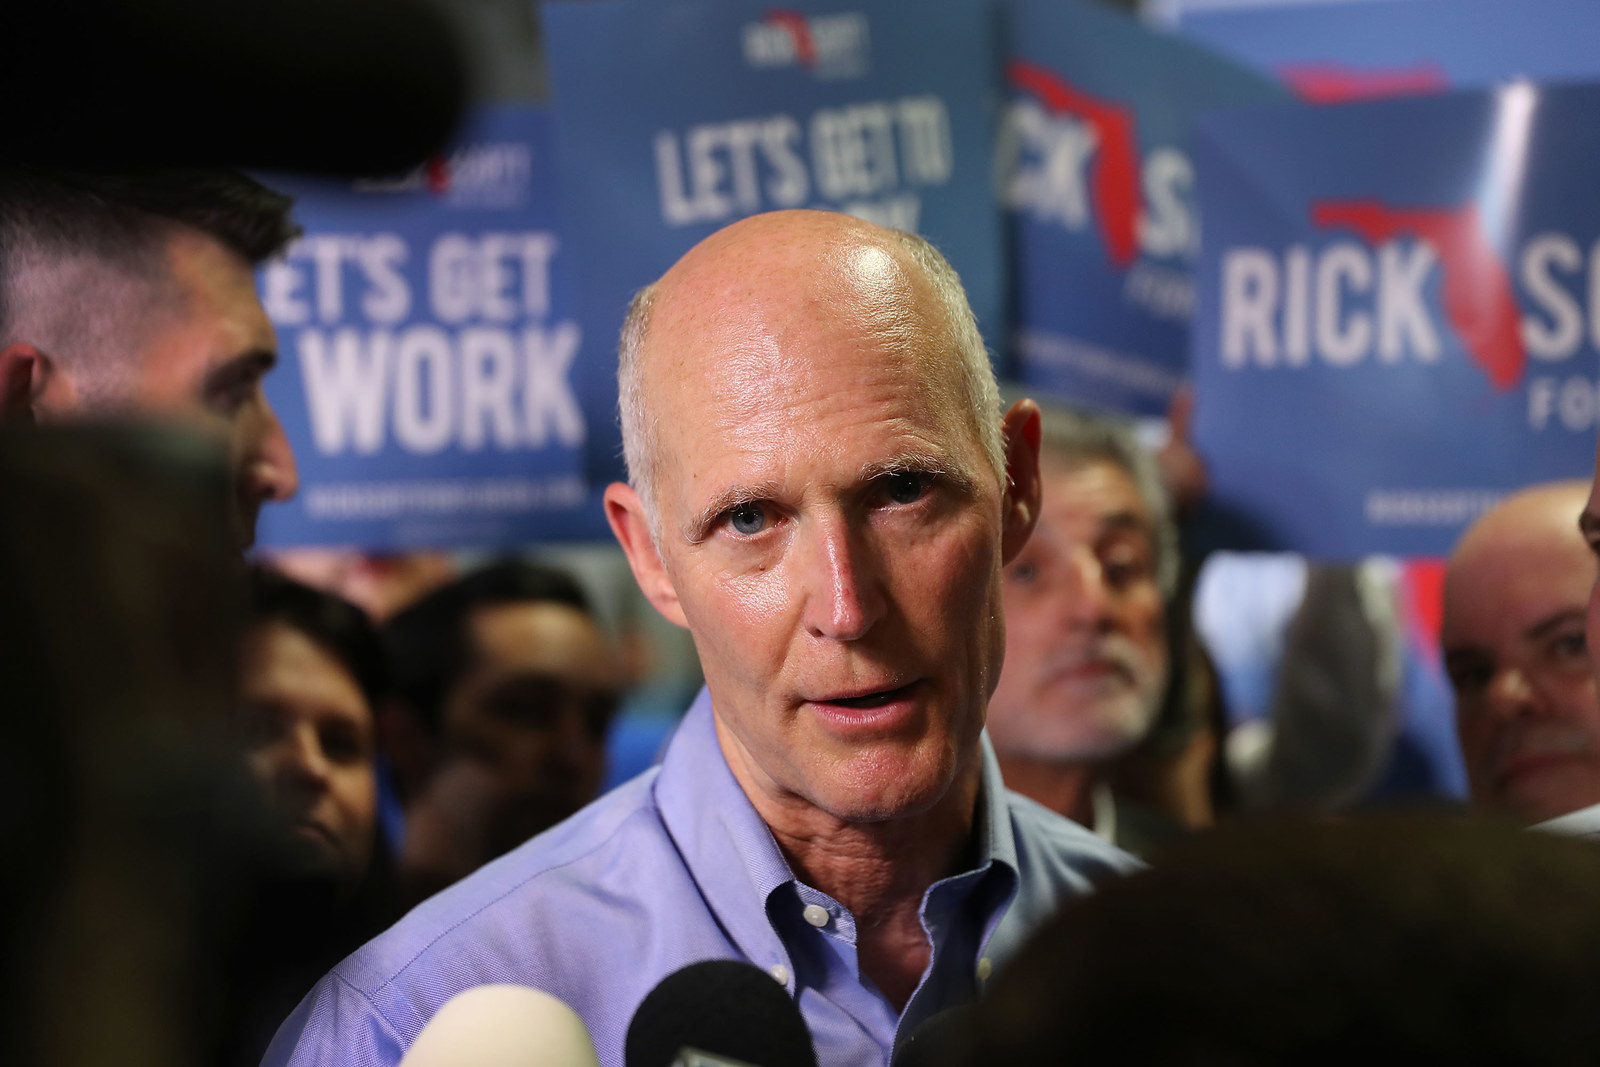 Republican Gov. Rick Scott Was Just Sued Over His Role In The Florida Recount